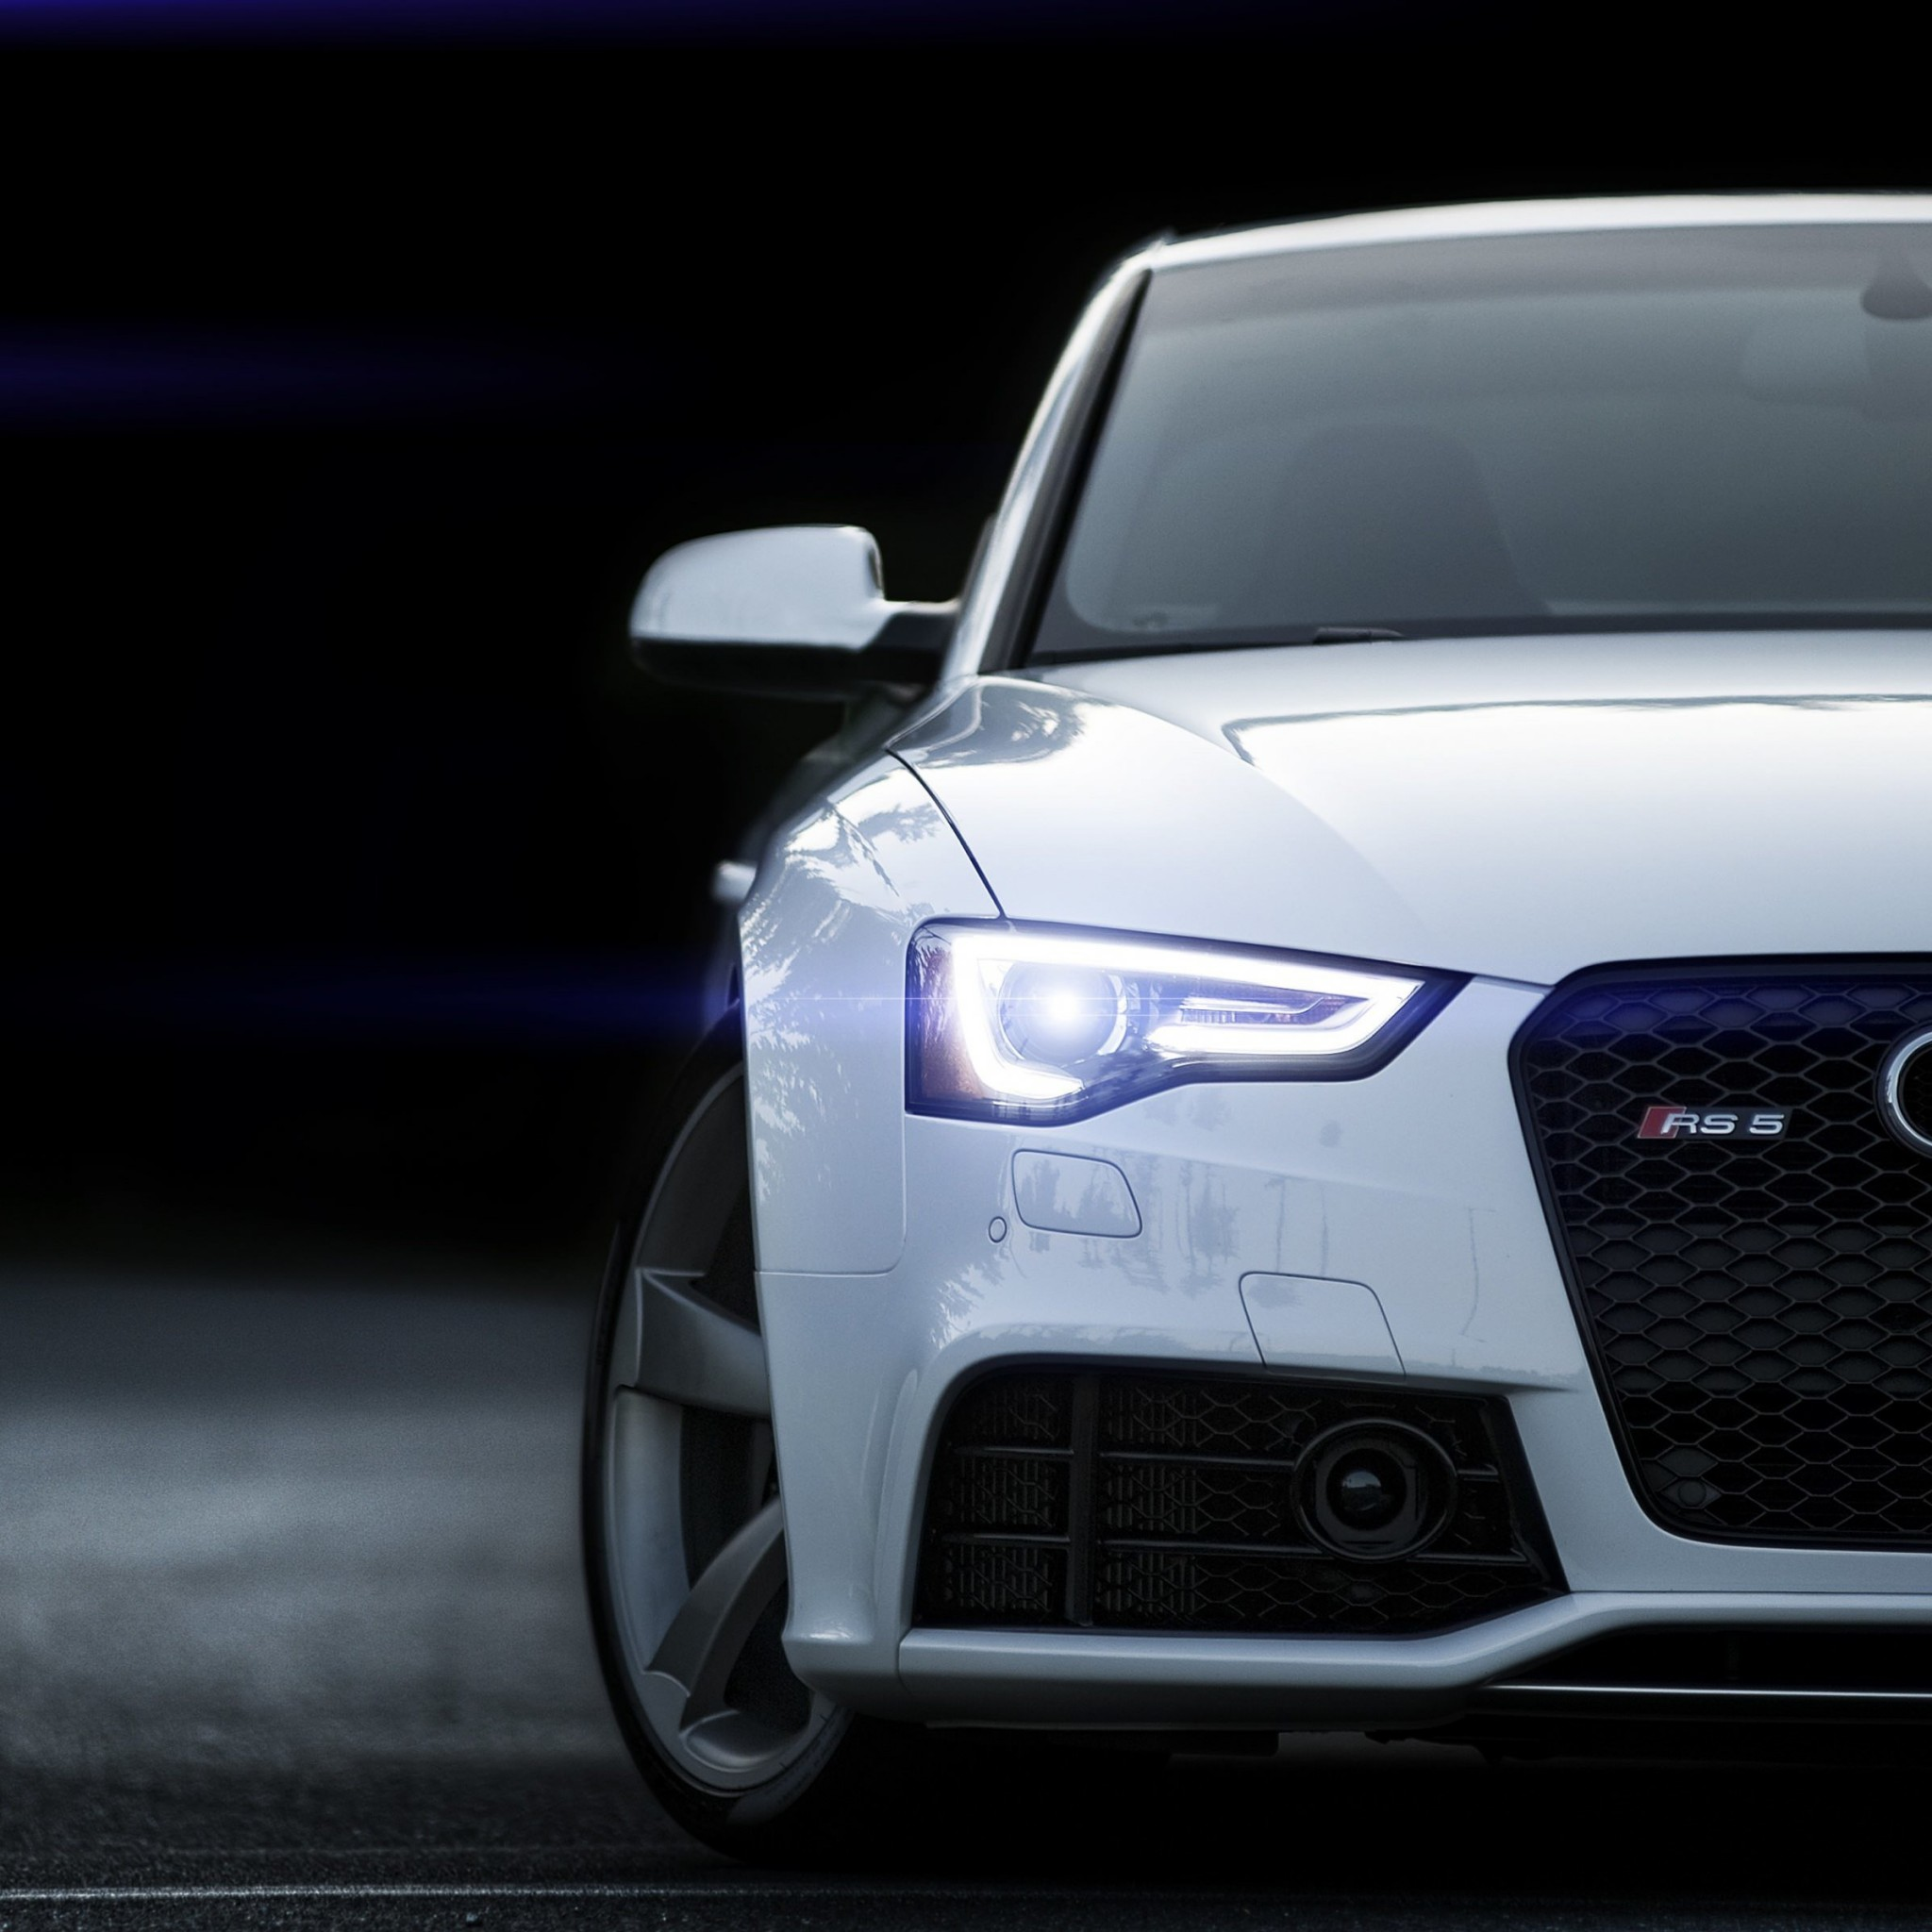 2015 Audi RS 5 Coupe Wallpaper for Google Nexus 9